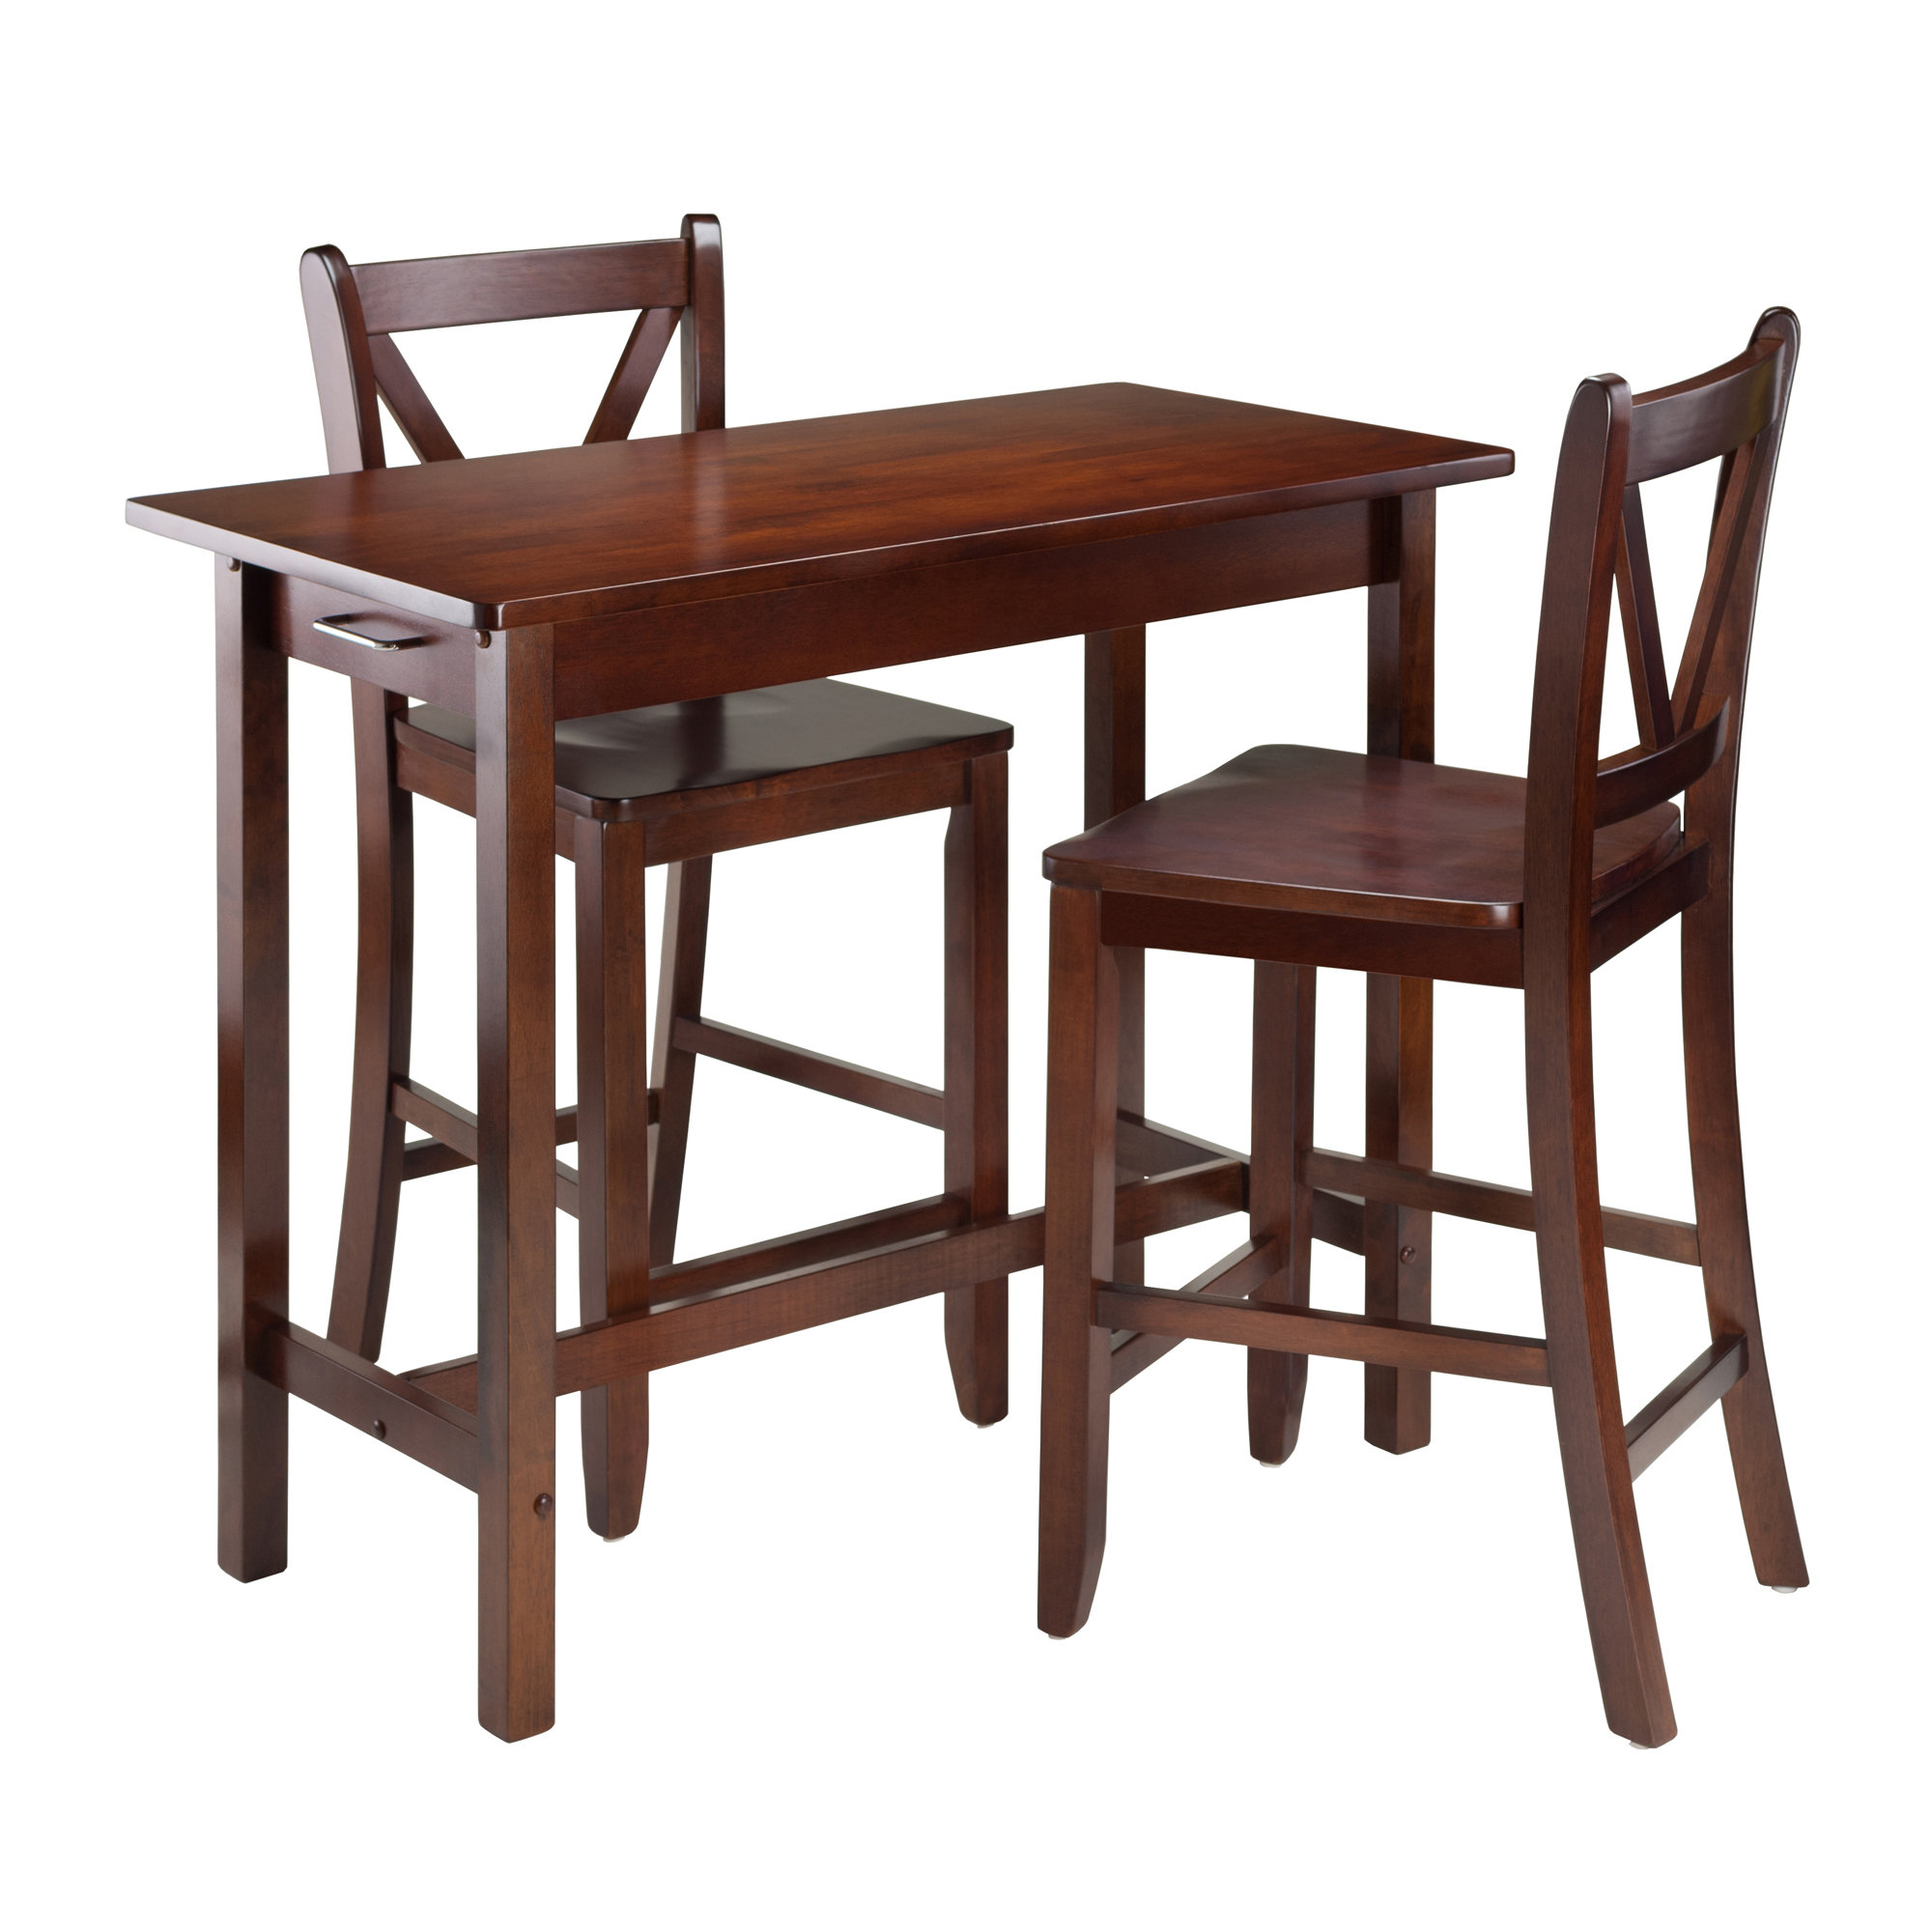 Most Recent Winsome 3 Piece Counter Height Dining Sets Throughout Winsome Kitchen Island 3 Piece Counter Height Dining Set & Reviews (View 7 of 25)